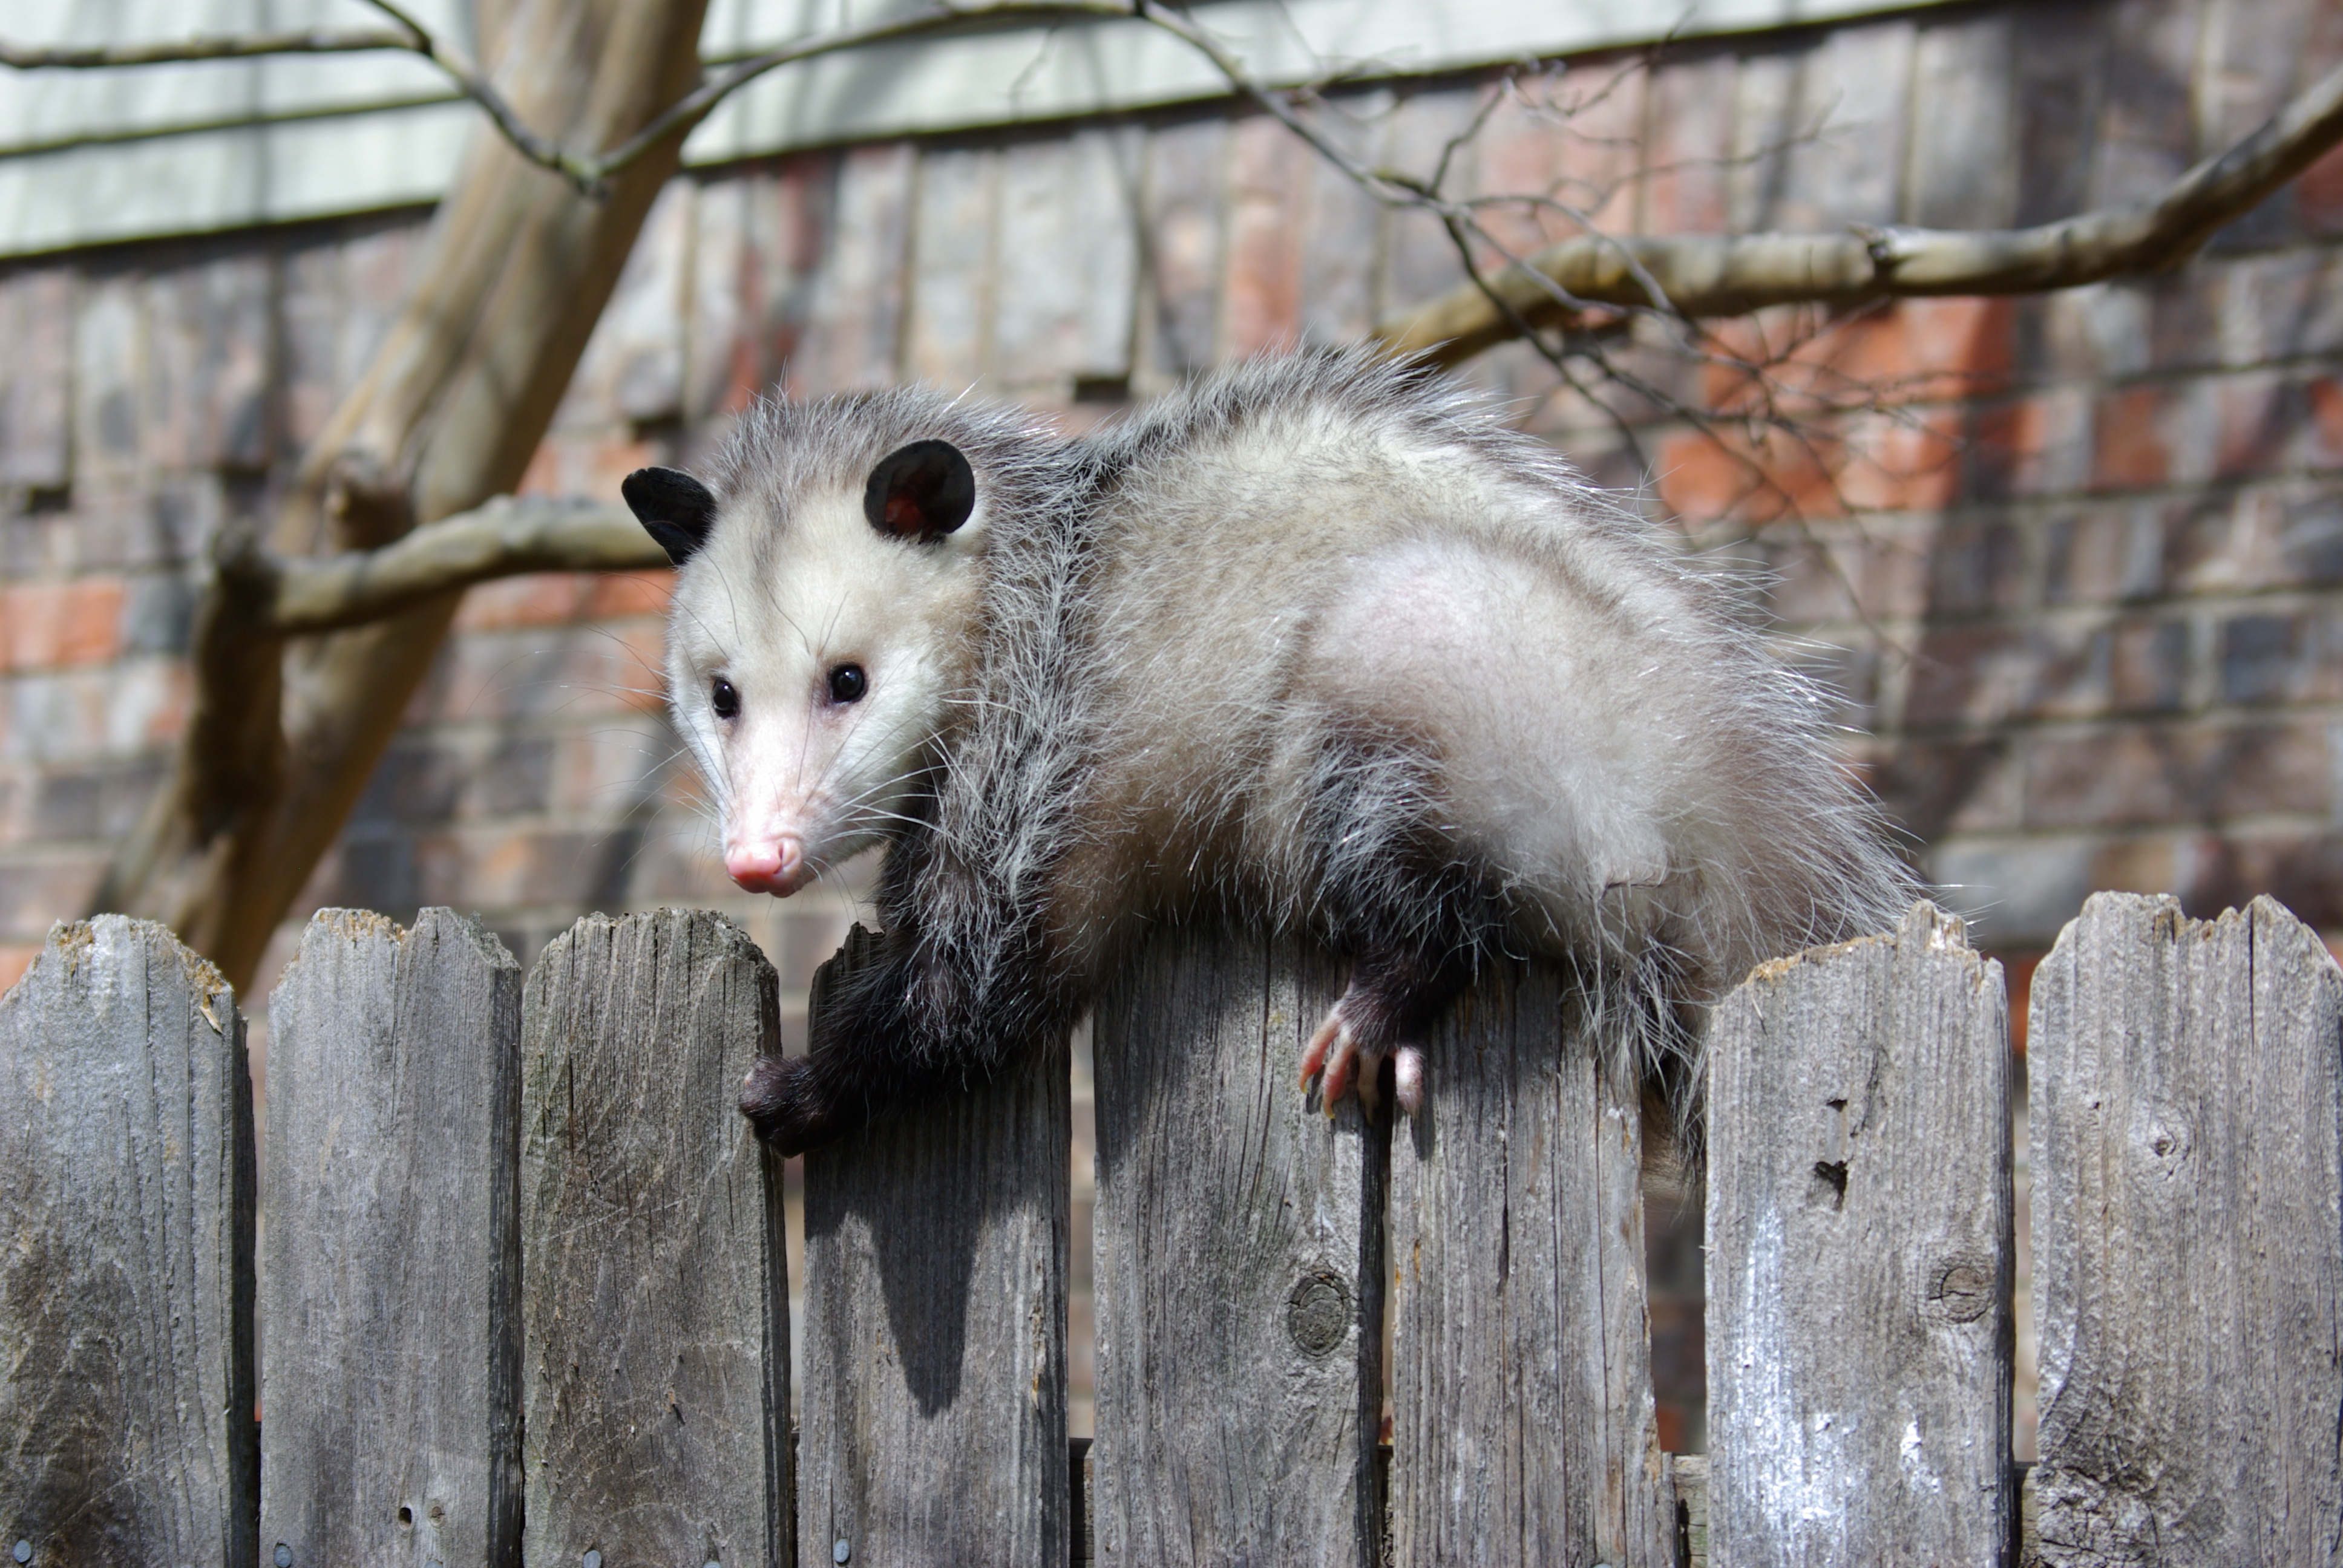 Fence For Dogs >> Possibly more 'possum | Millard Fillmore's Bathtub